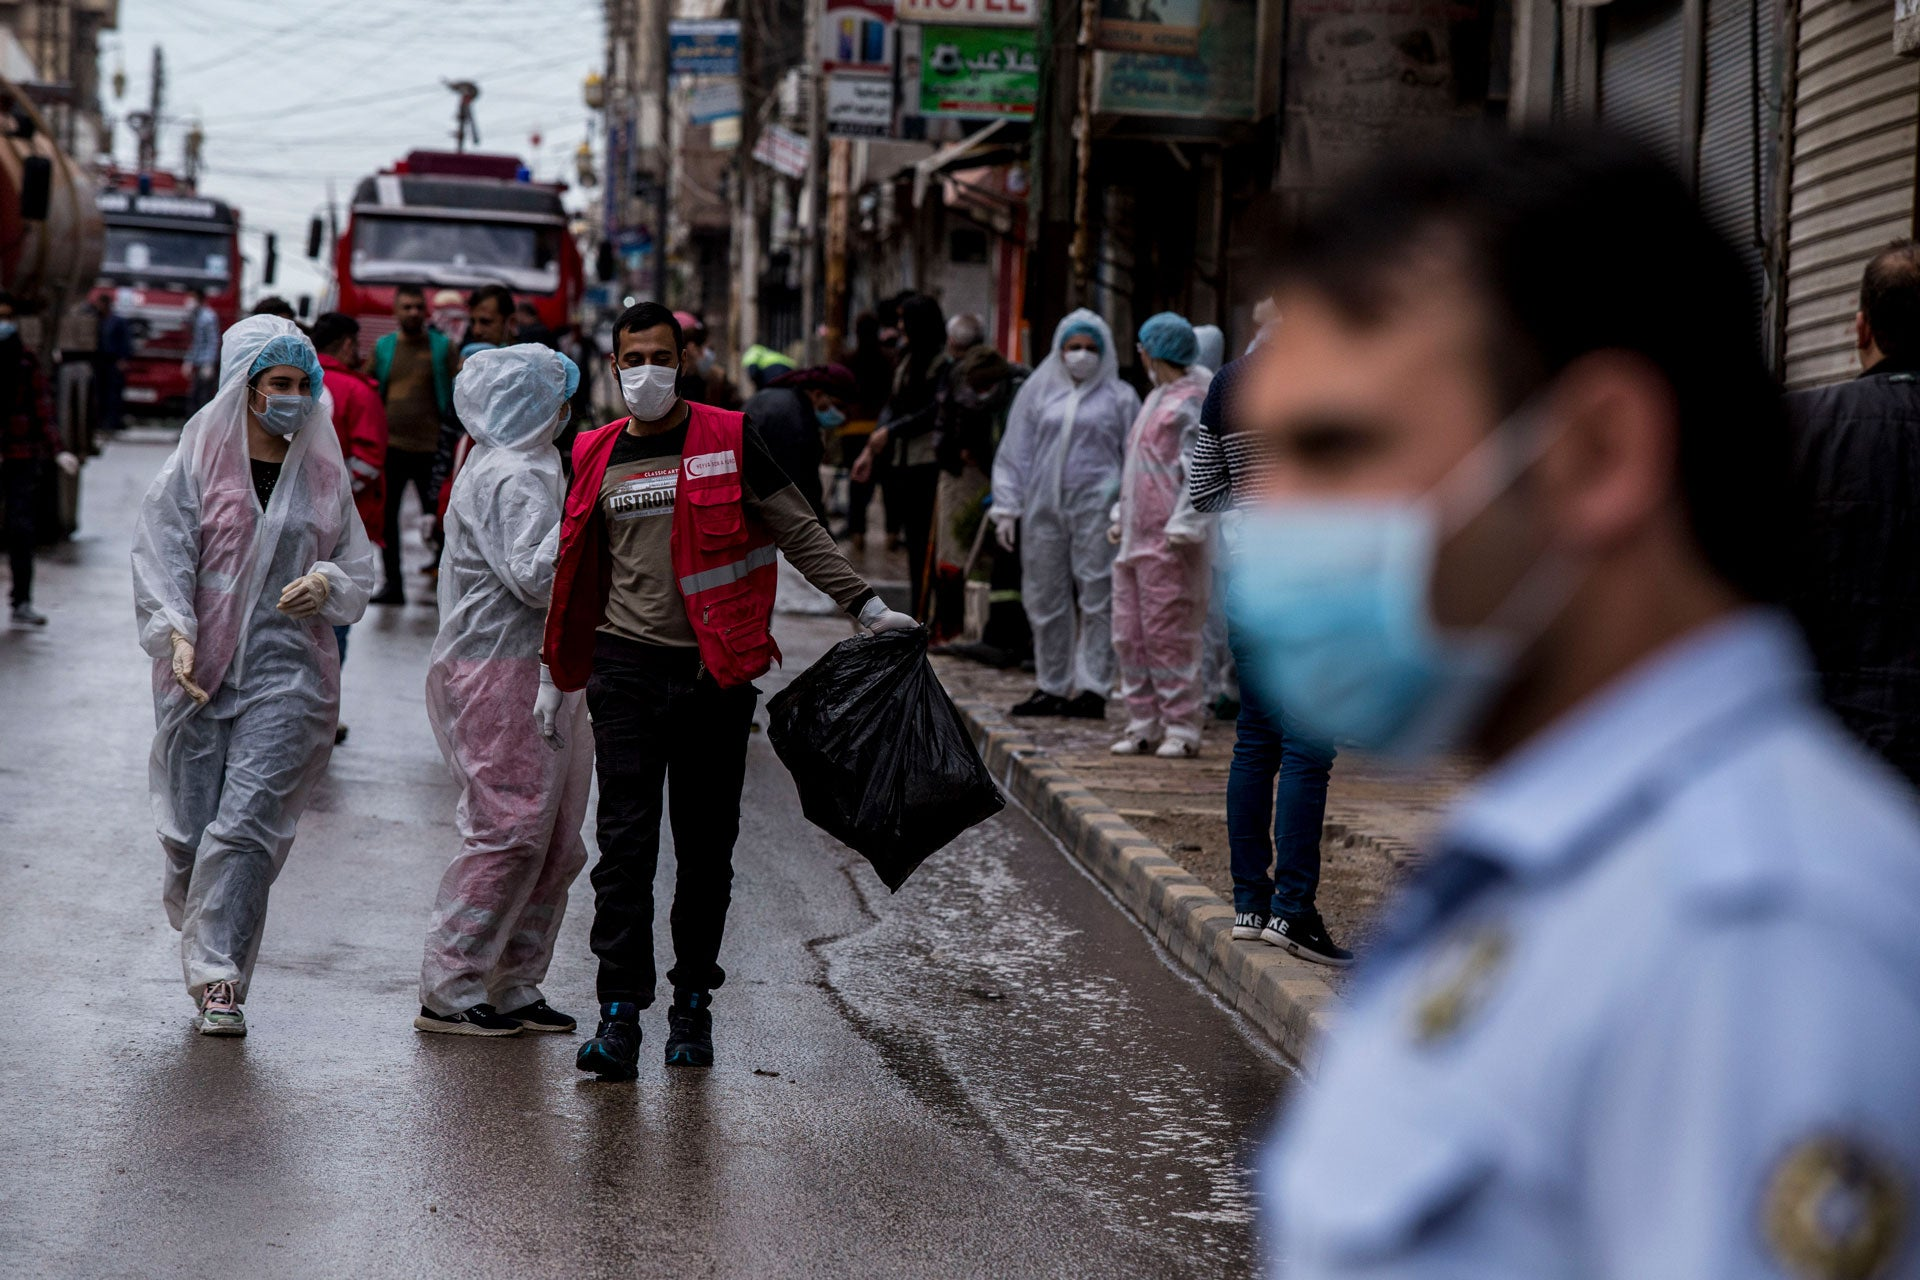 Medical workers oversee the disinfection of streets to prevent the spread of coronavirus in Qamishli, Syria, March 24, 2020.